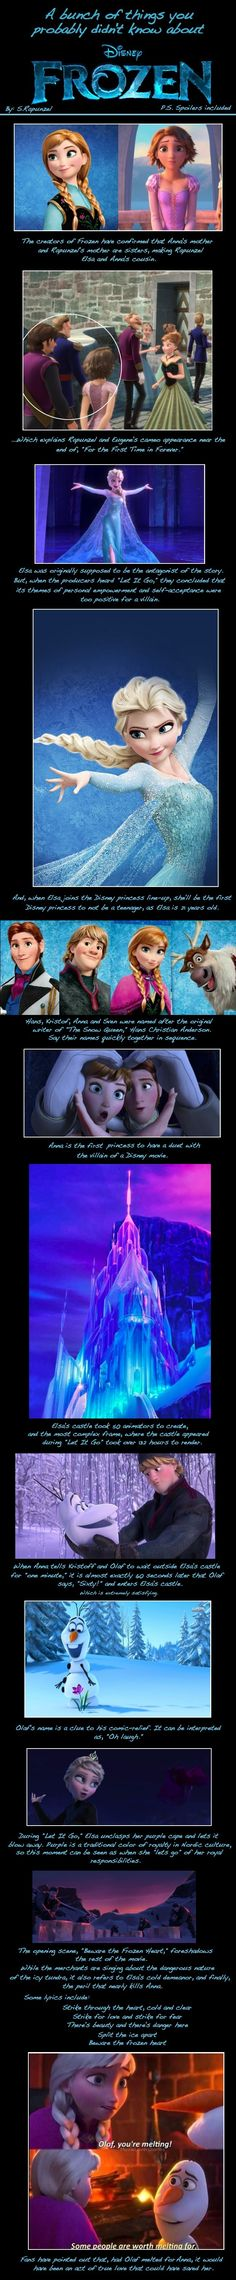 Here is the truth about frozen